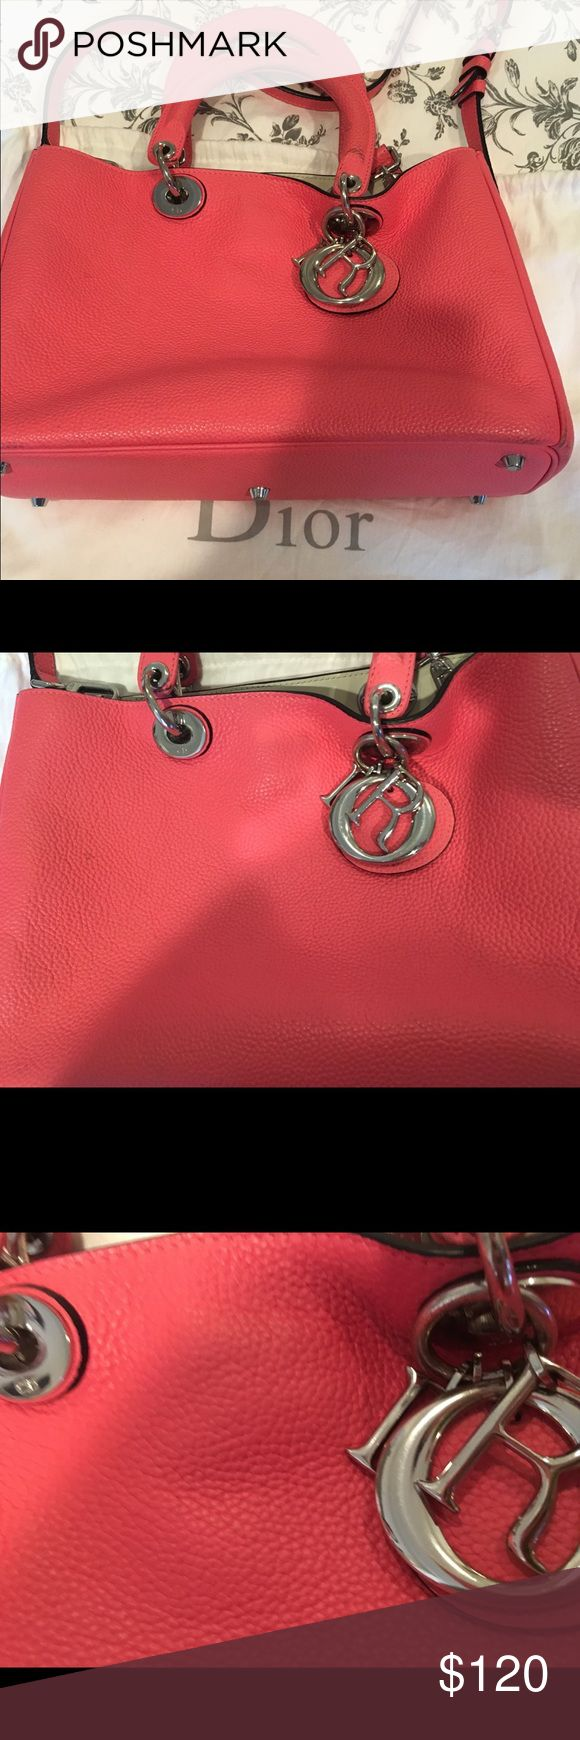 CD style hot pink Roomy shoulder bag Gorgeous Hot pink CD style shoulder bag!! Very roomy, good for daily use, enough enough to carry a laptop 💻! Inside is in great condition, there's obvious signs of usage on the handles as shown on pictures. Real leather, a cute inspiration to have. Serious offers only. Bags Shoulder Bags